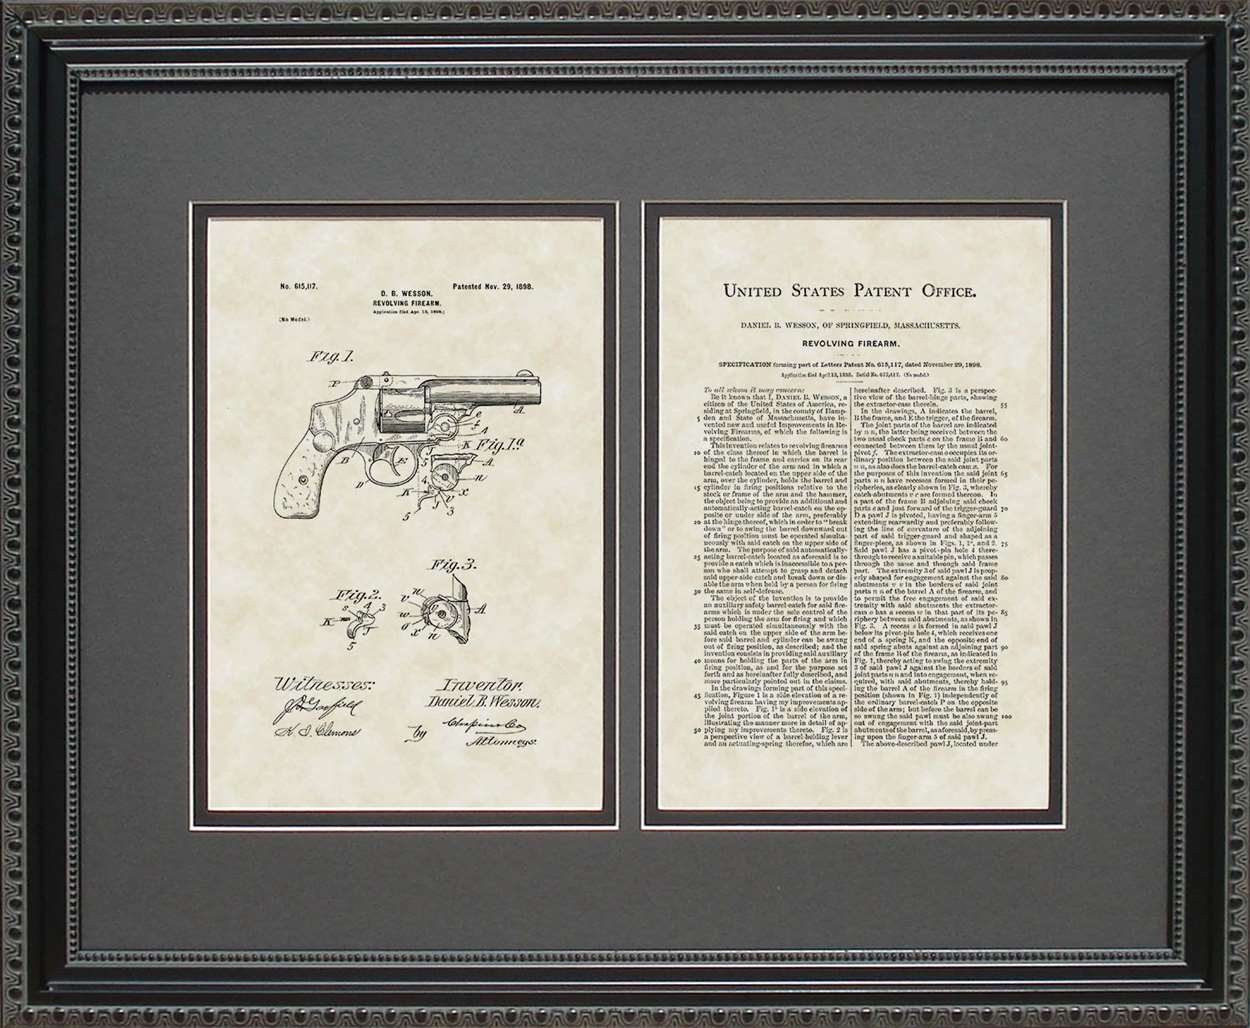 Revolver Patent, Art & Copy, Wesson, 1898, 16x20